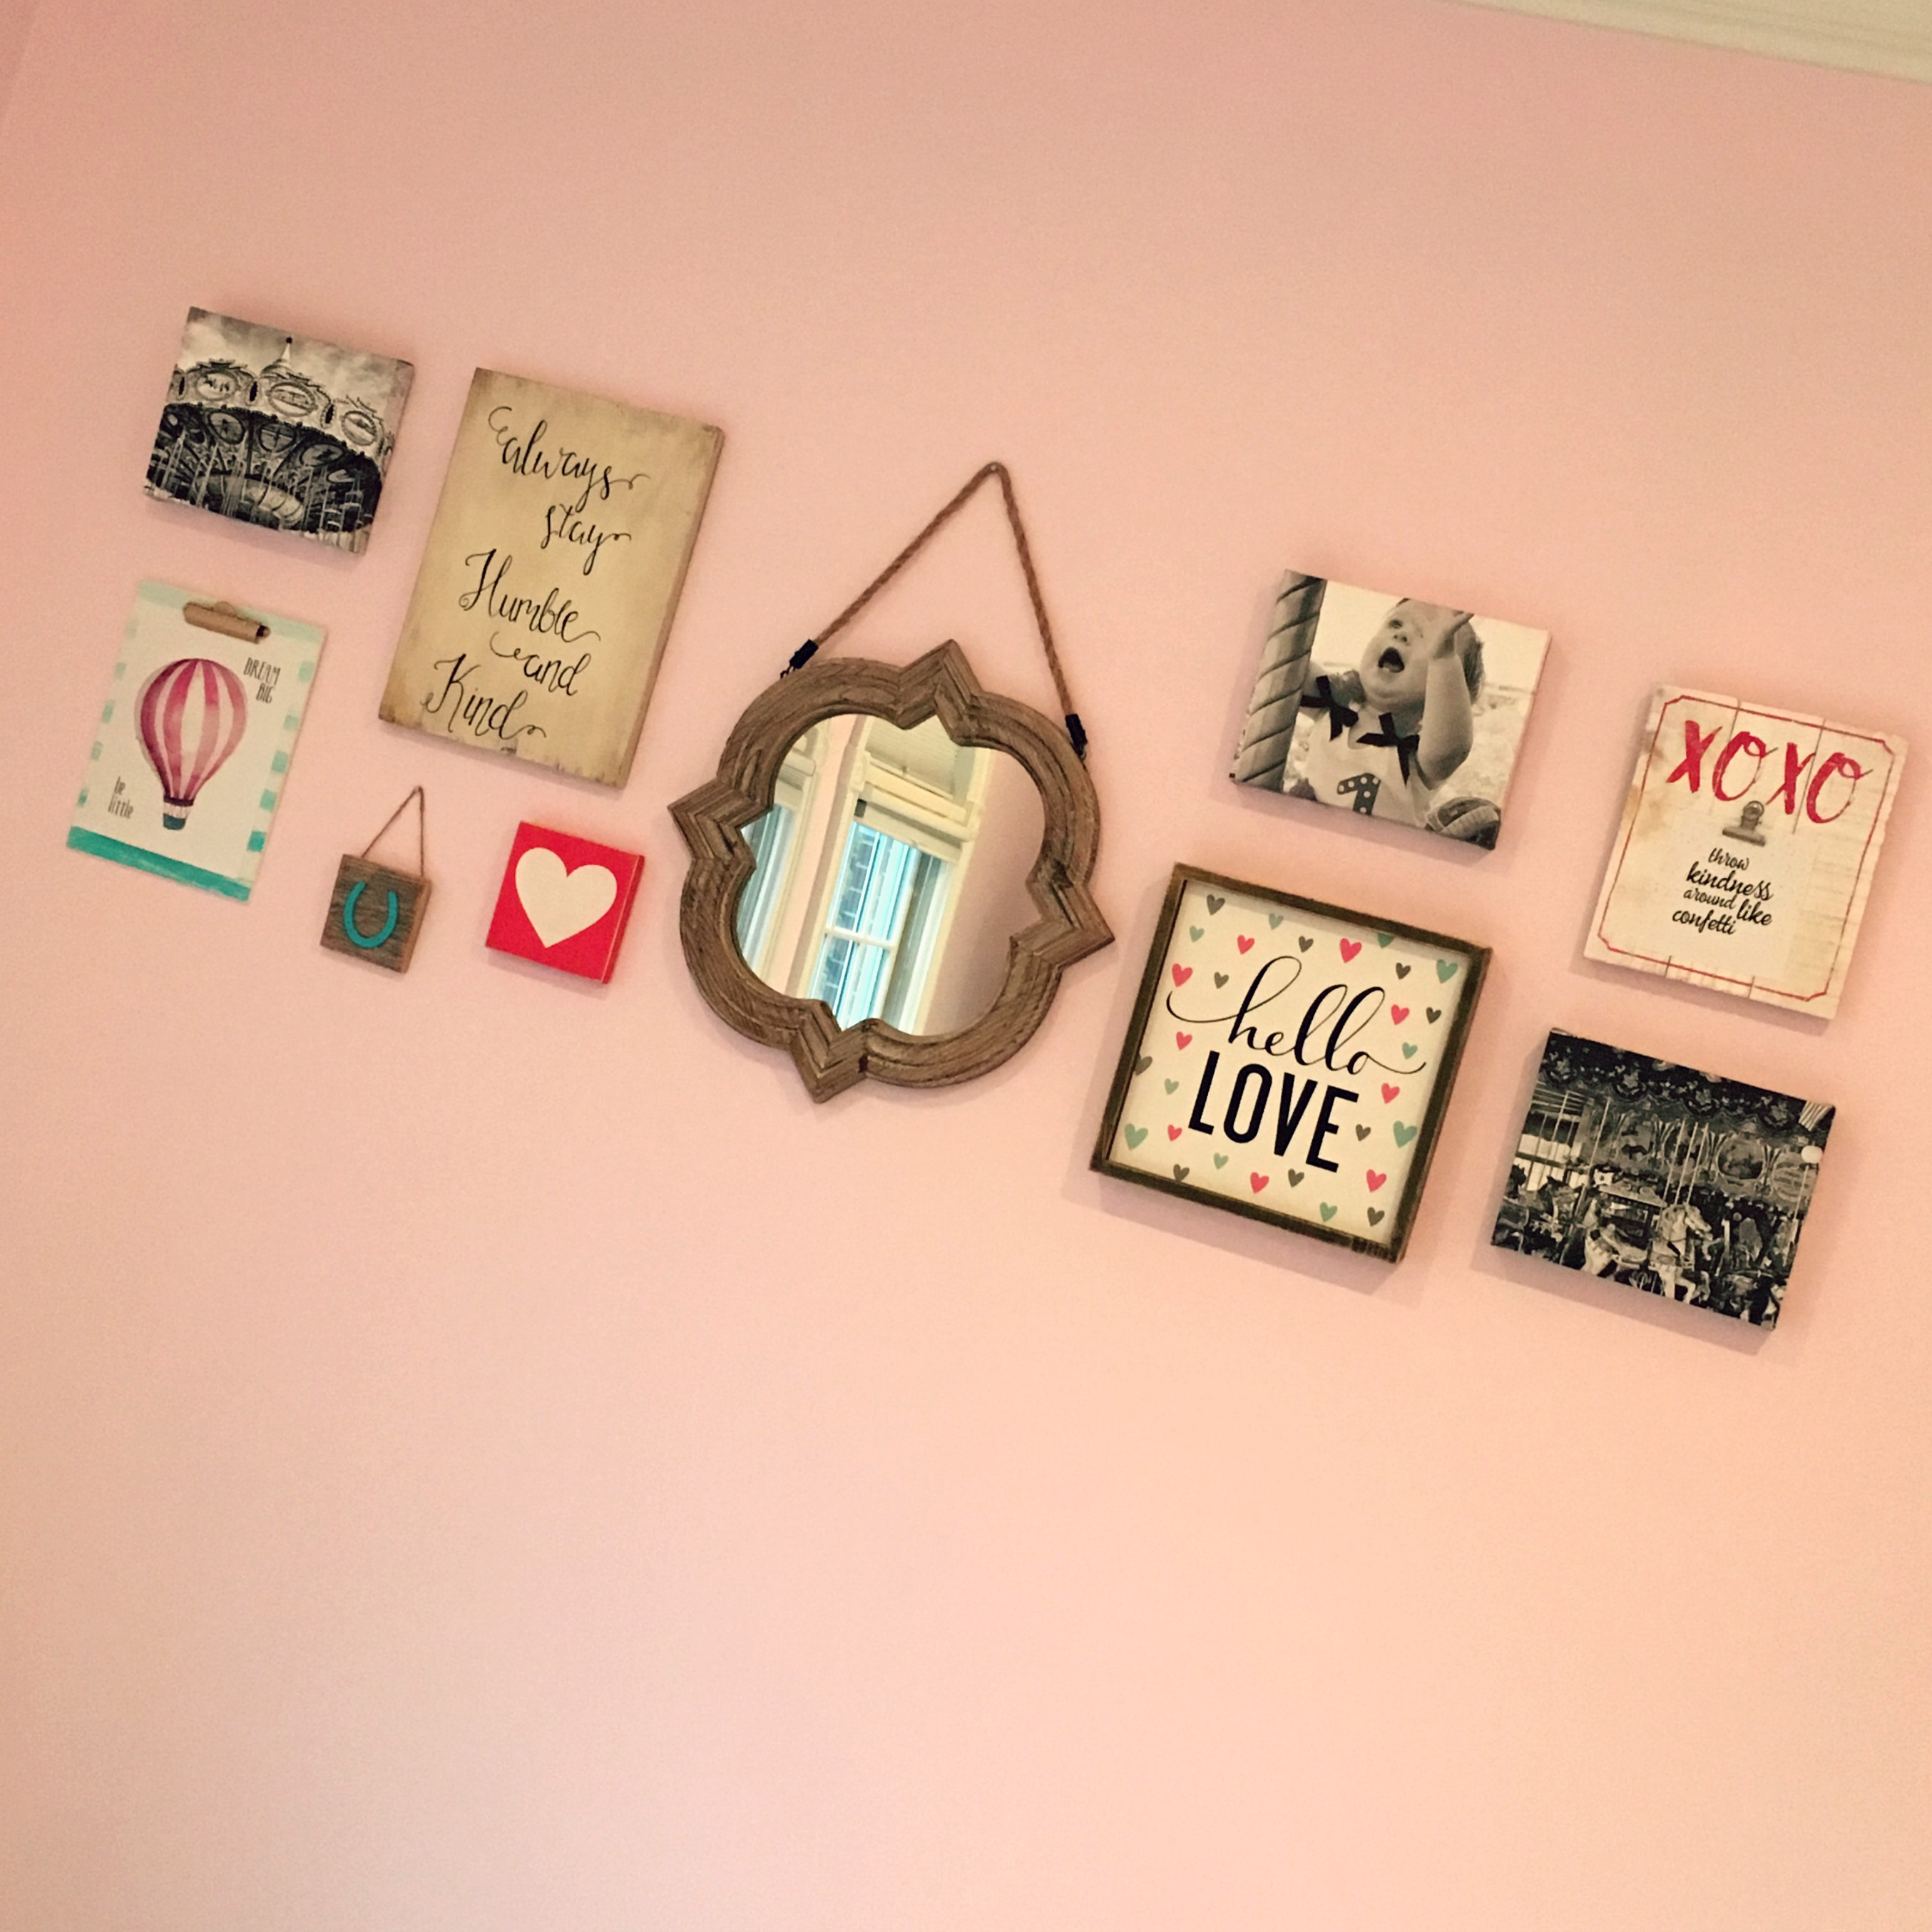 Girl Toddler Room & Gallery Wall